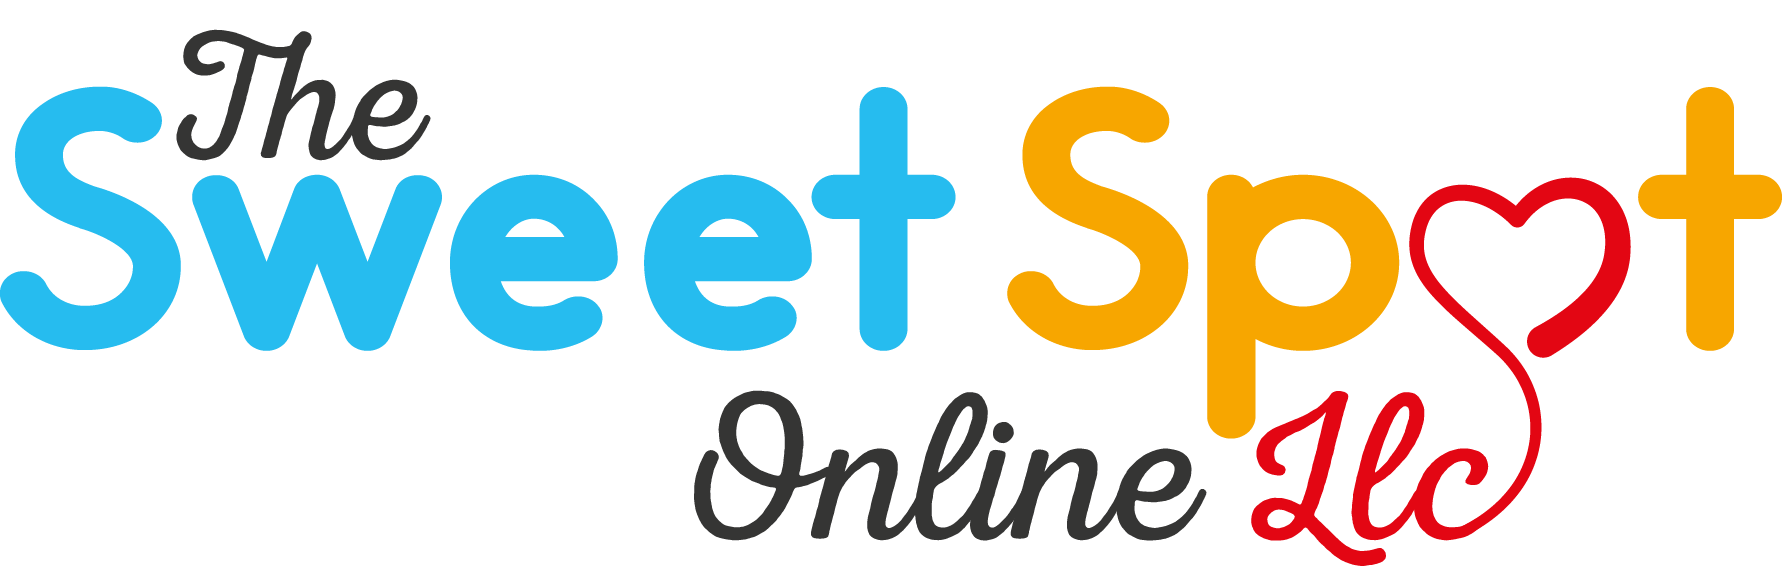 The Sweet Spot Online